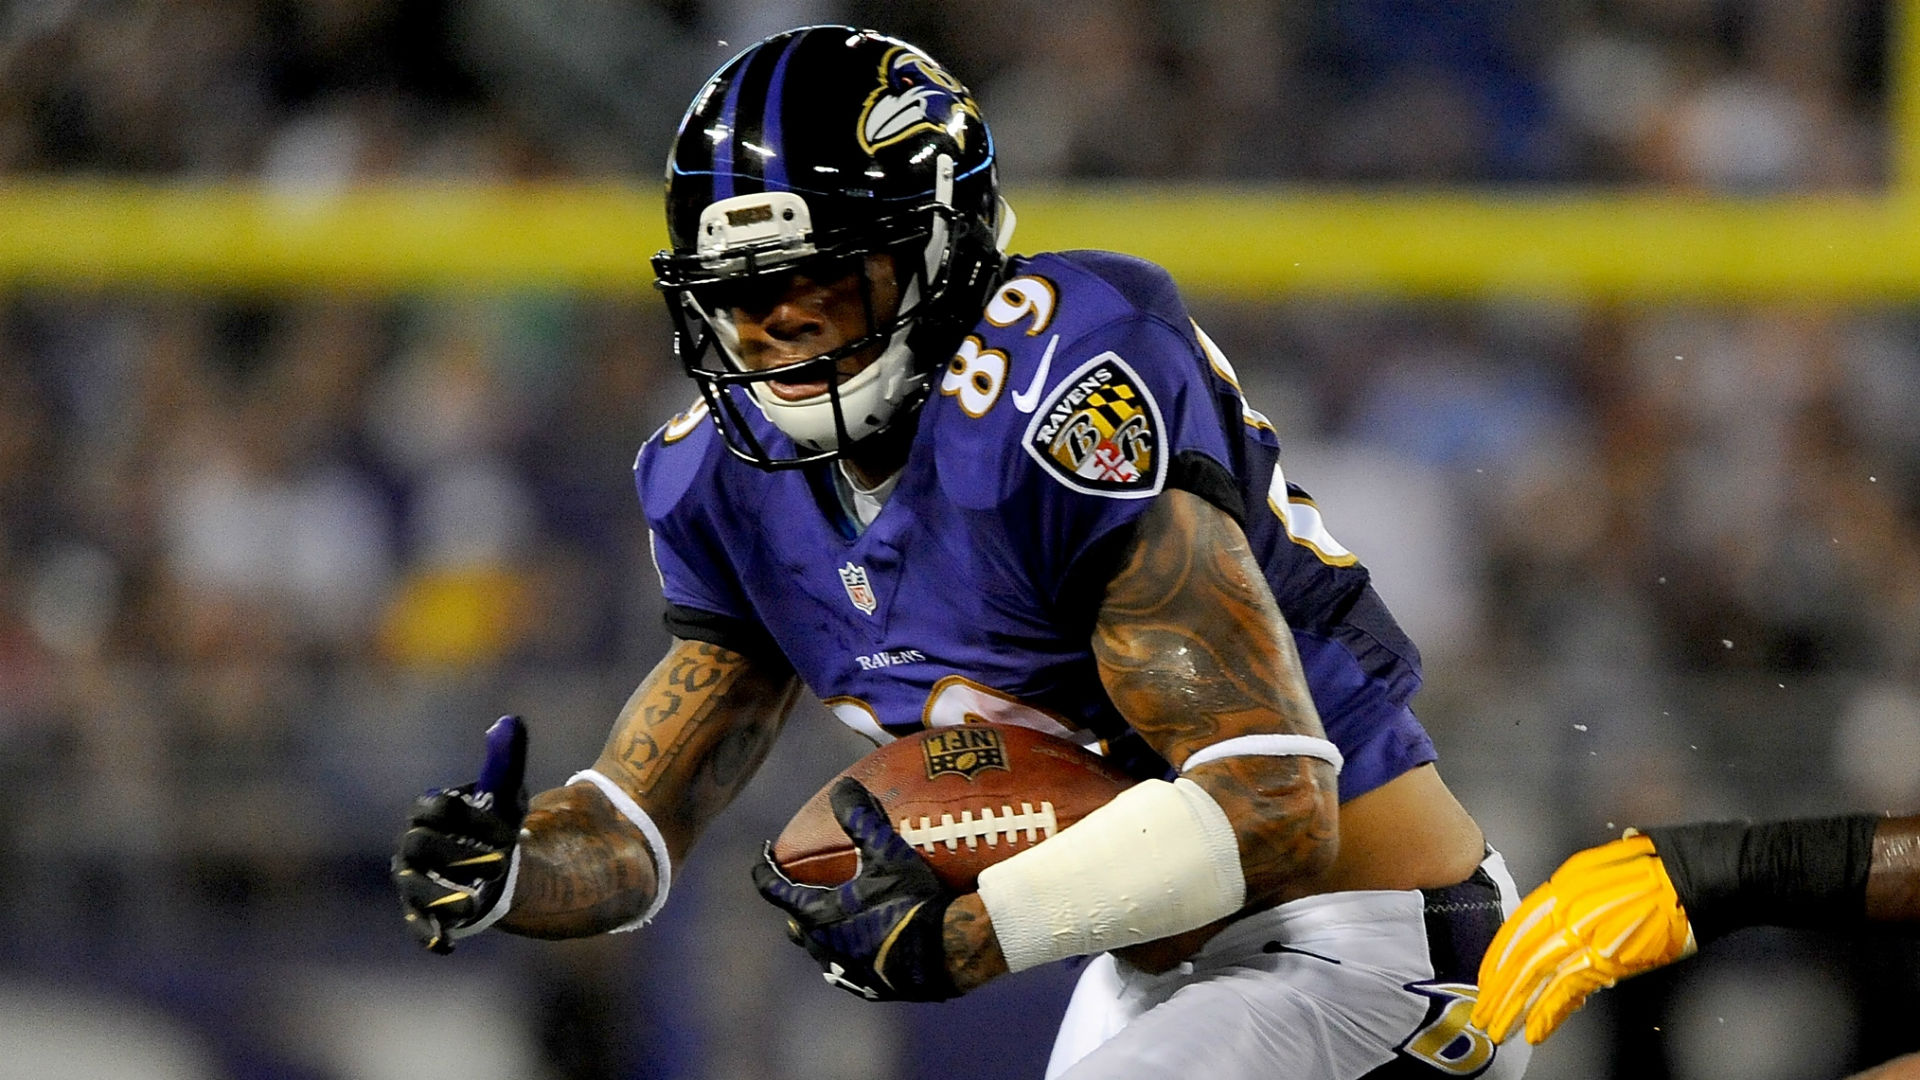 Chargers vs. Ravens betting preview and pick – Baltimore has starred as a favorite